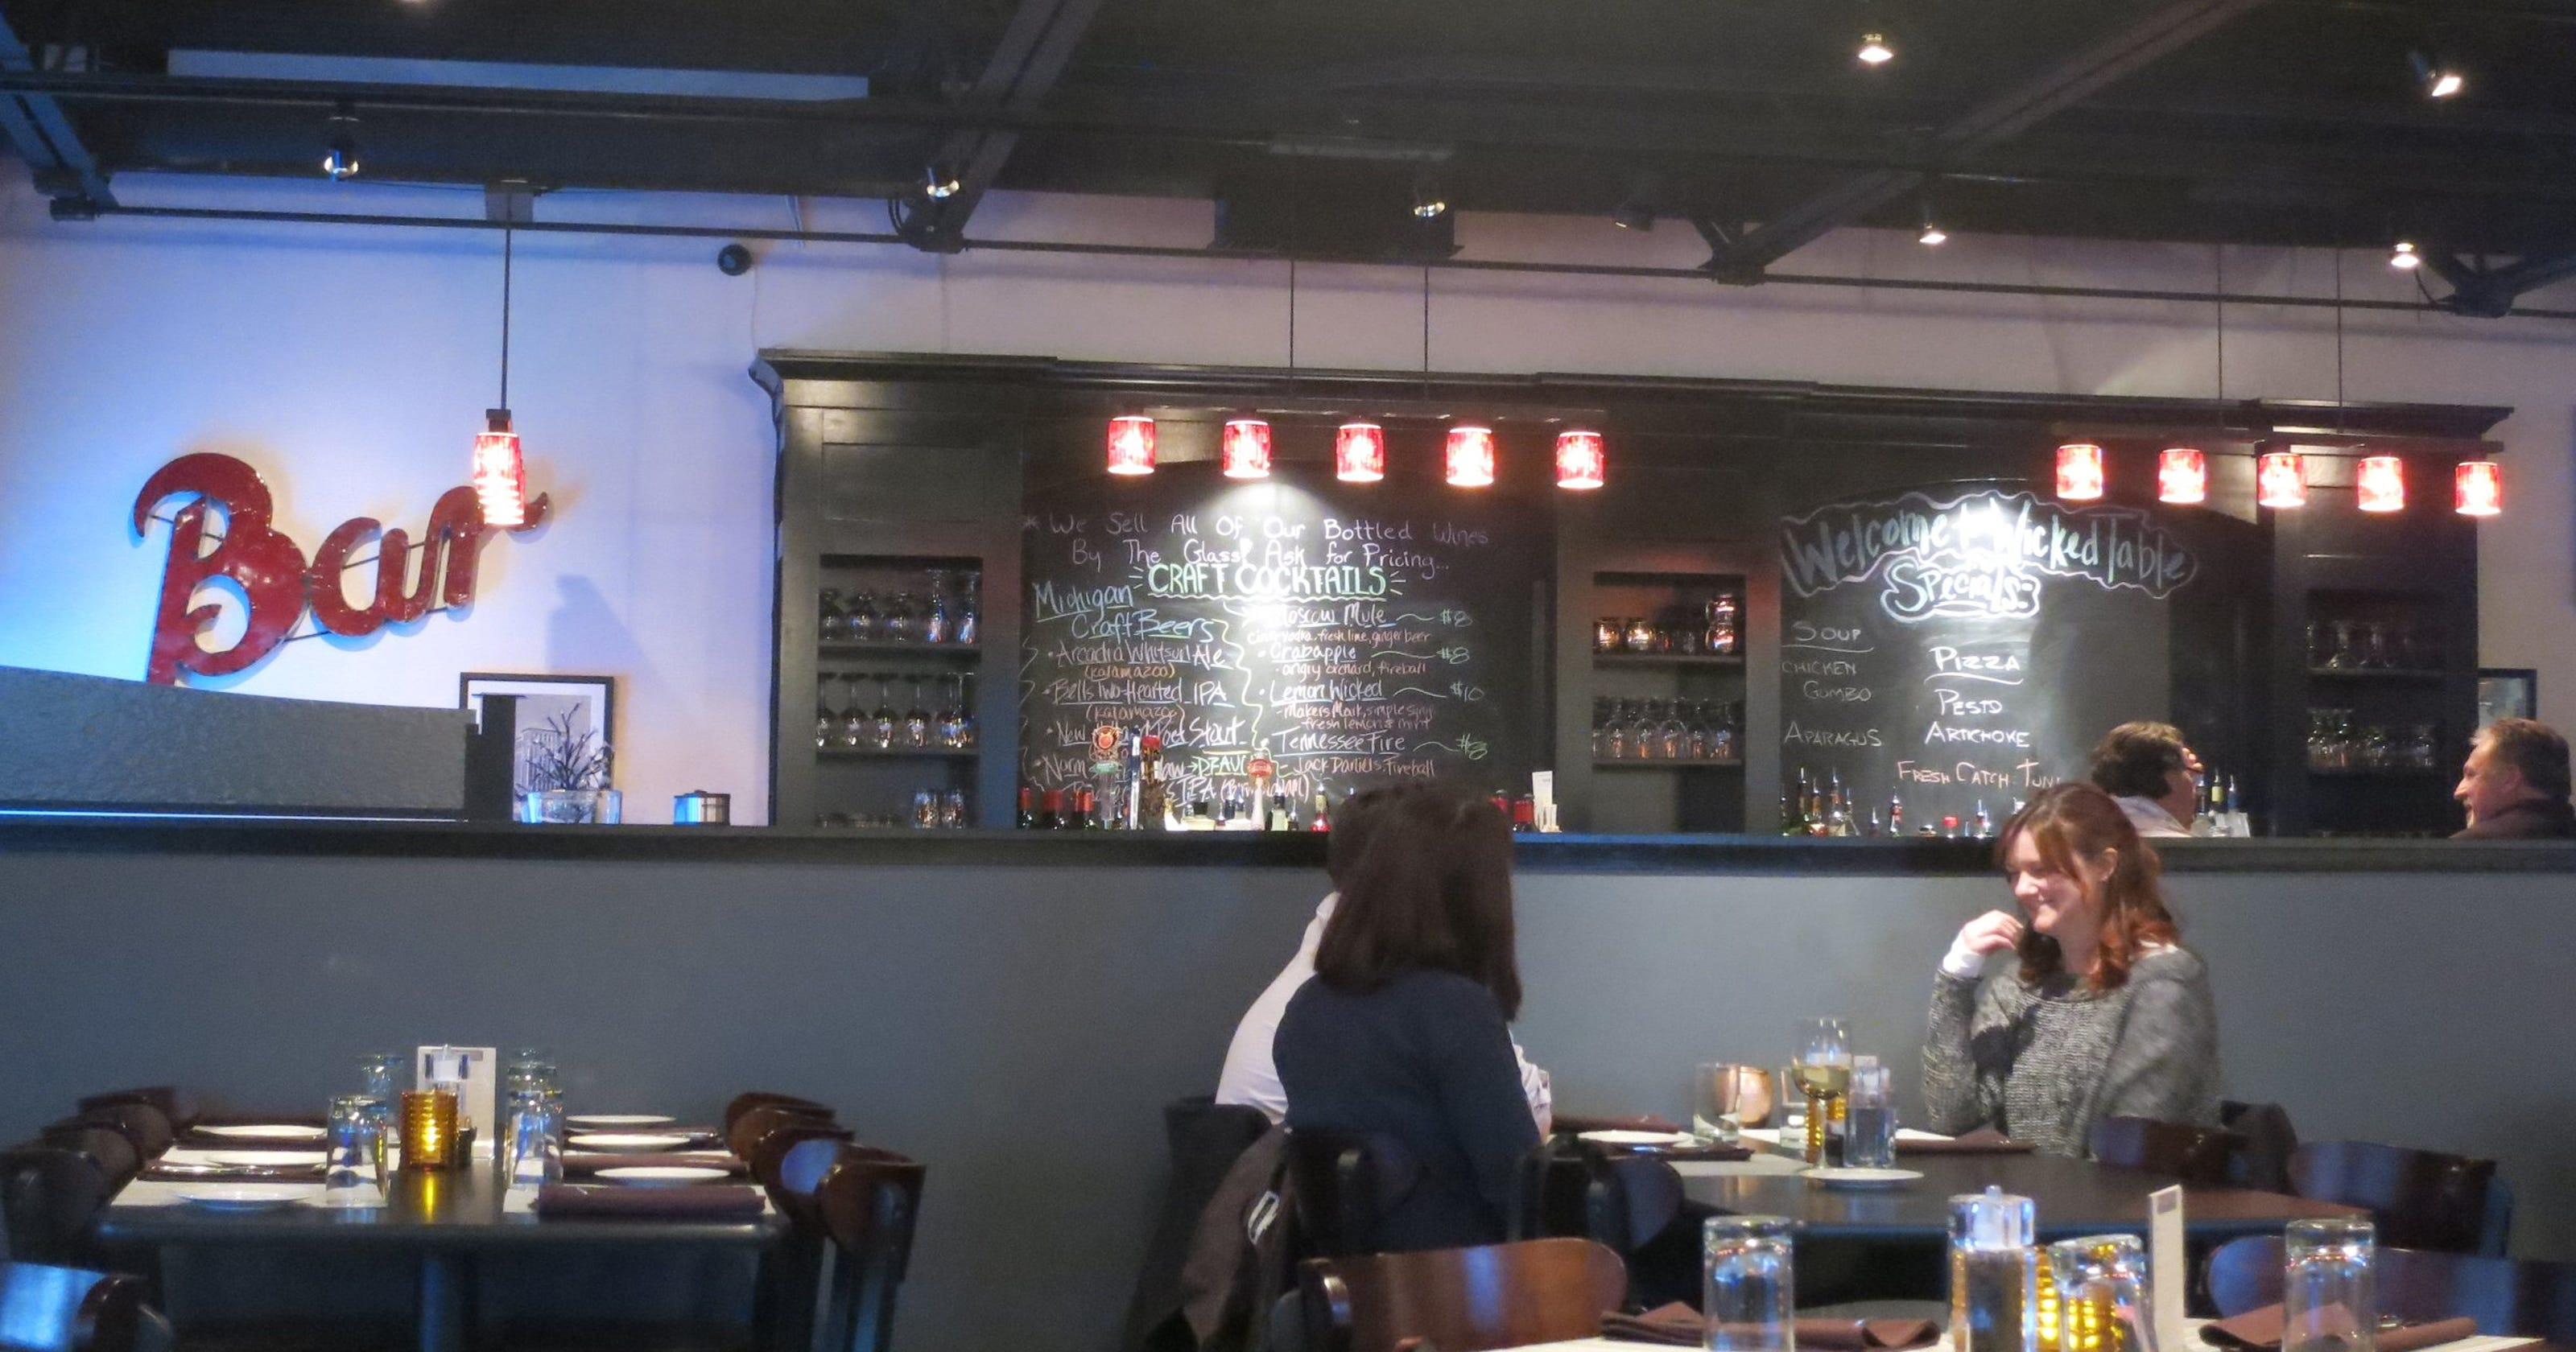 Breakfast Club restaurant founder opens nighttime Wicked Table